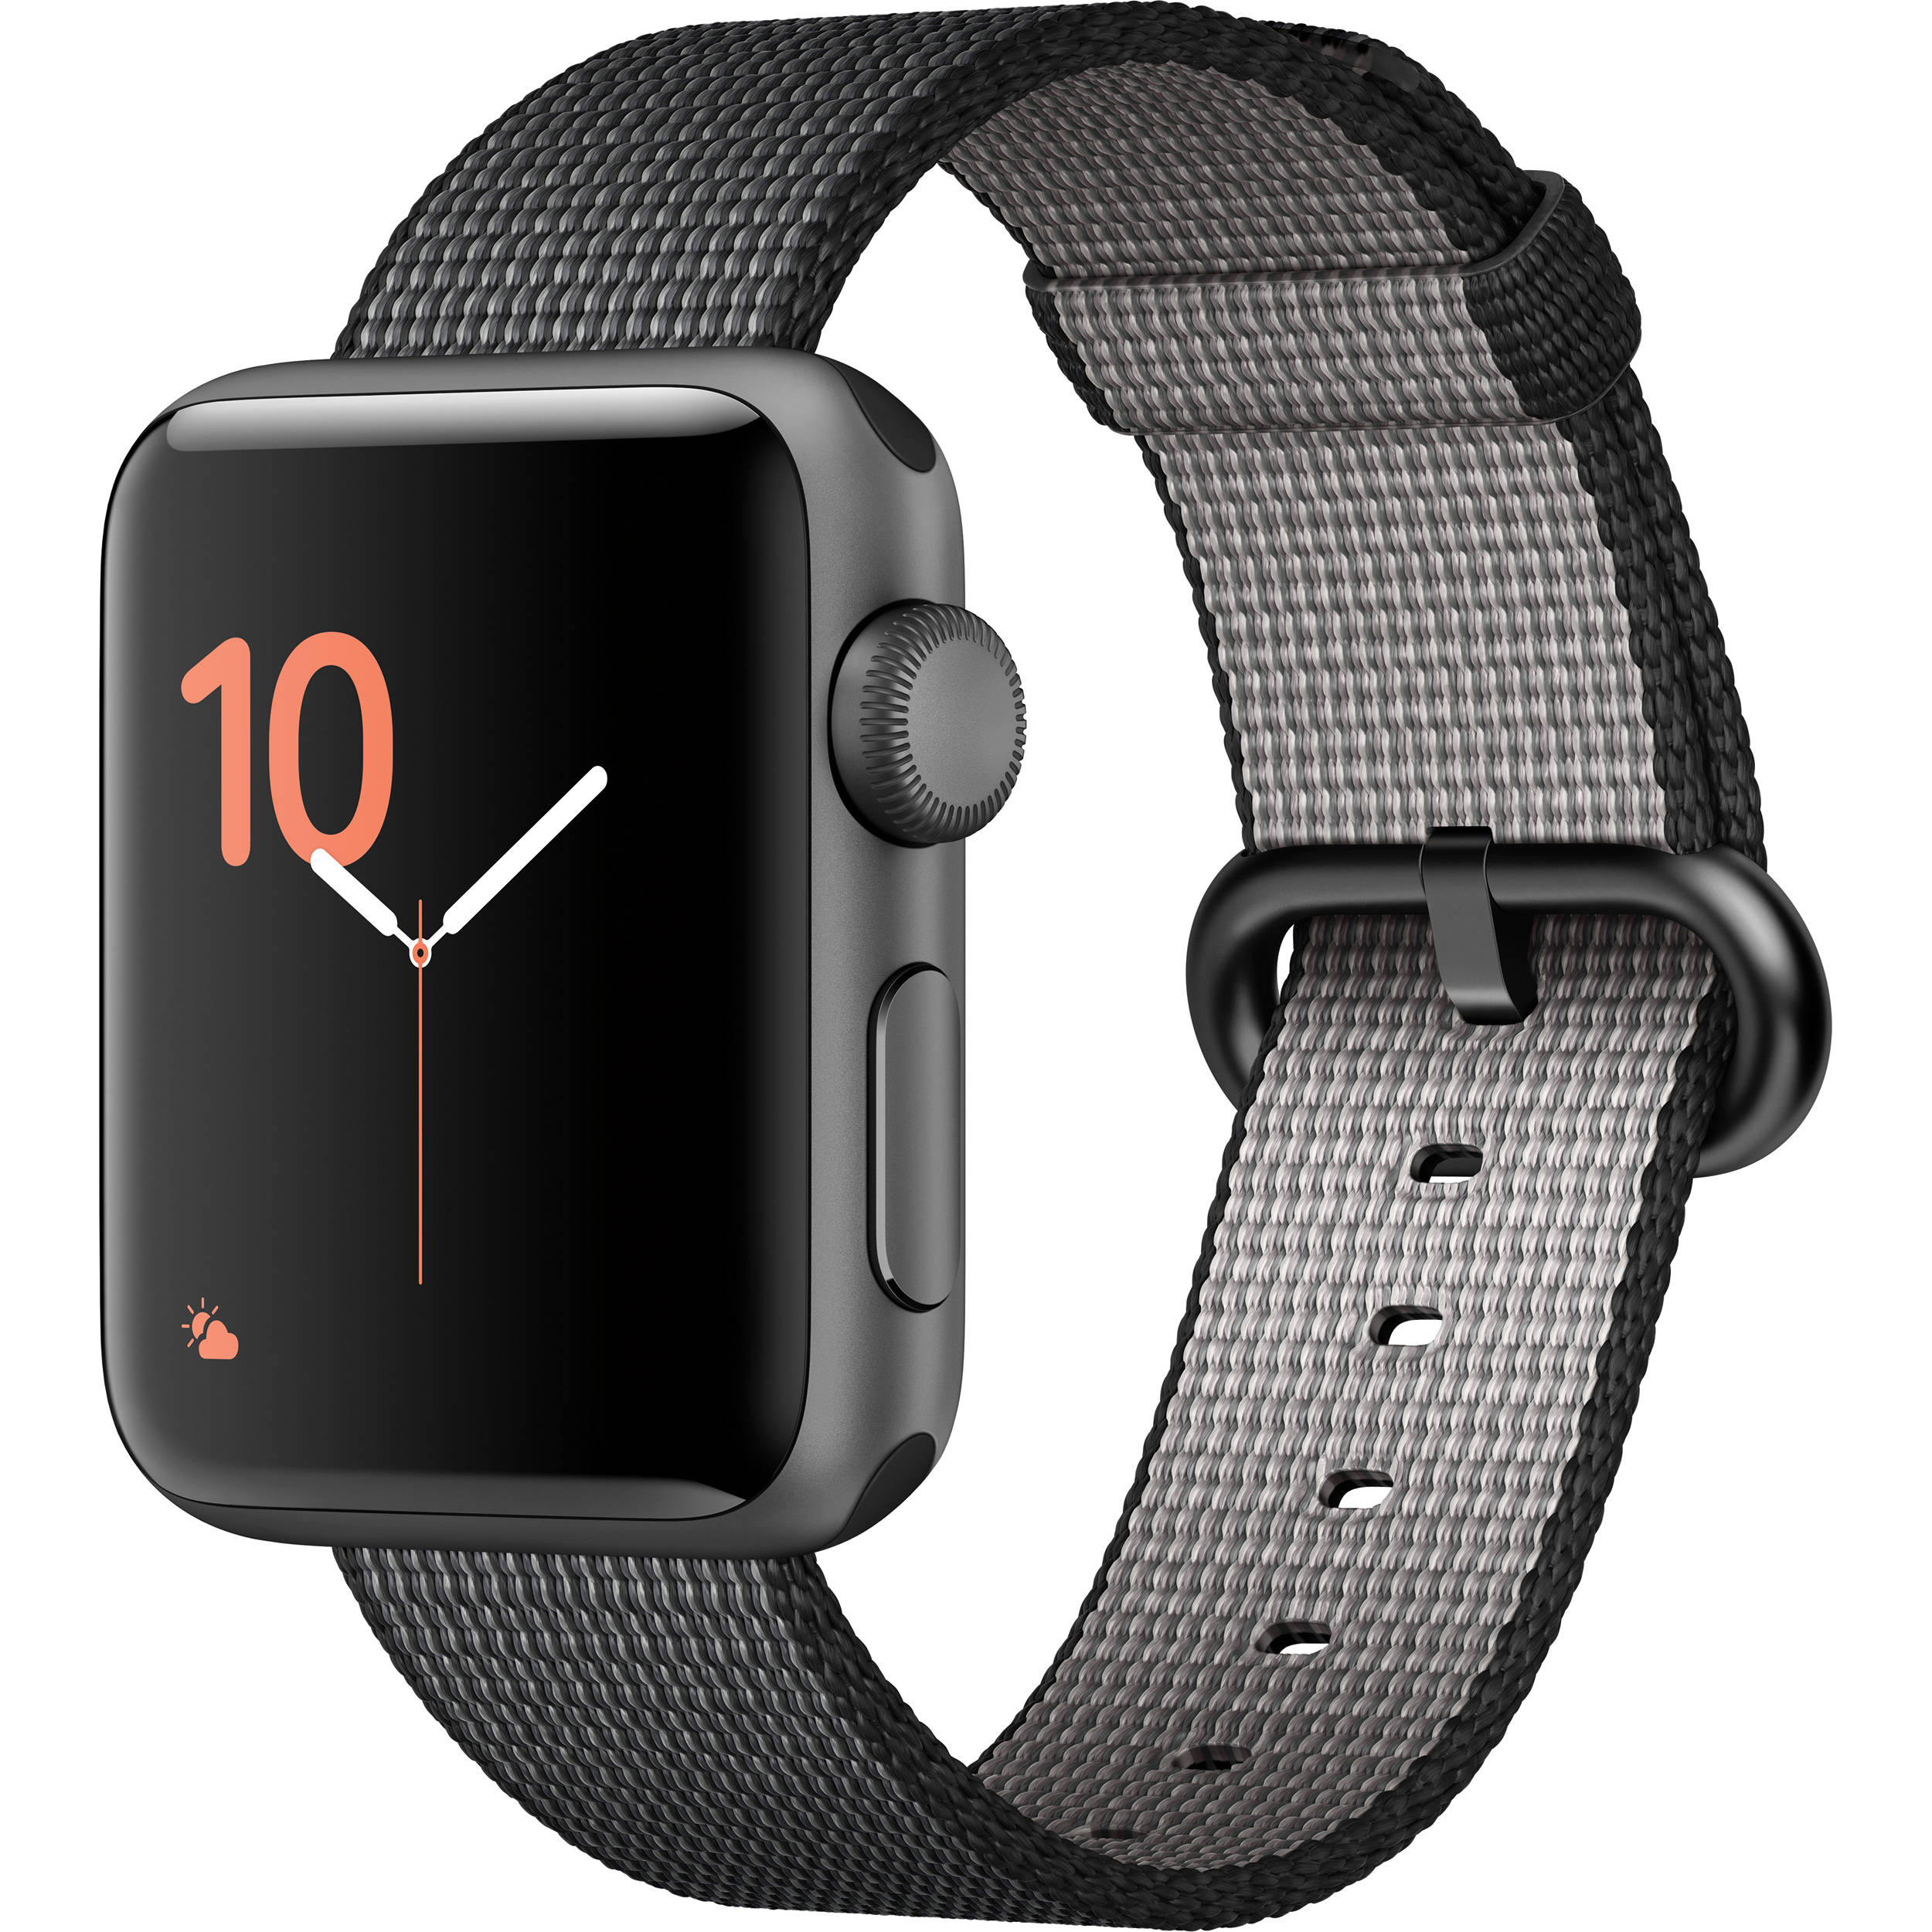 Refurbished Apple Watch Gen 2 Series 2 38mm Space Gray Aluminum - Black Woven Band MP052LL/A